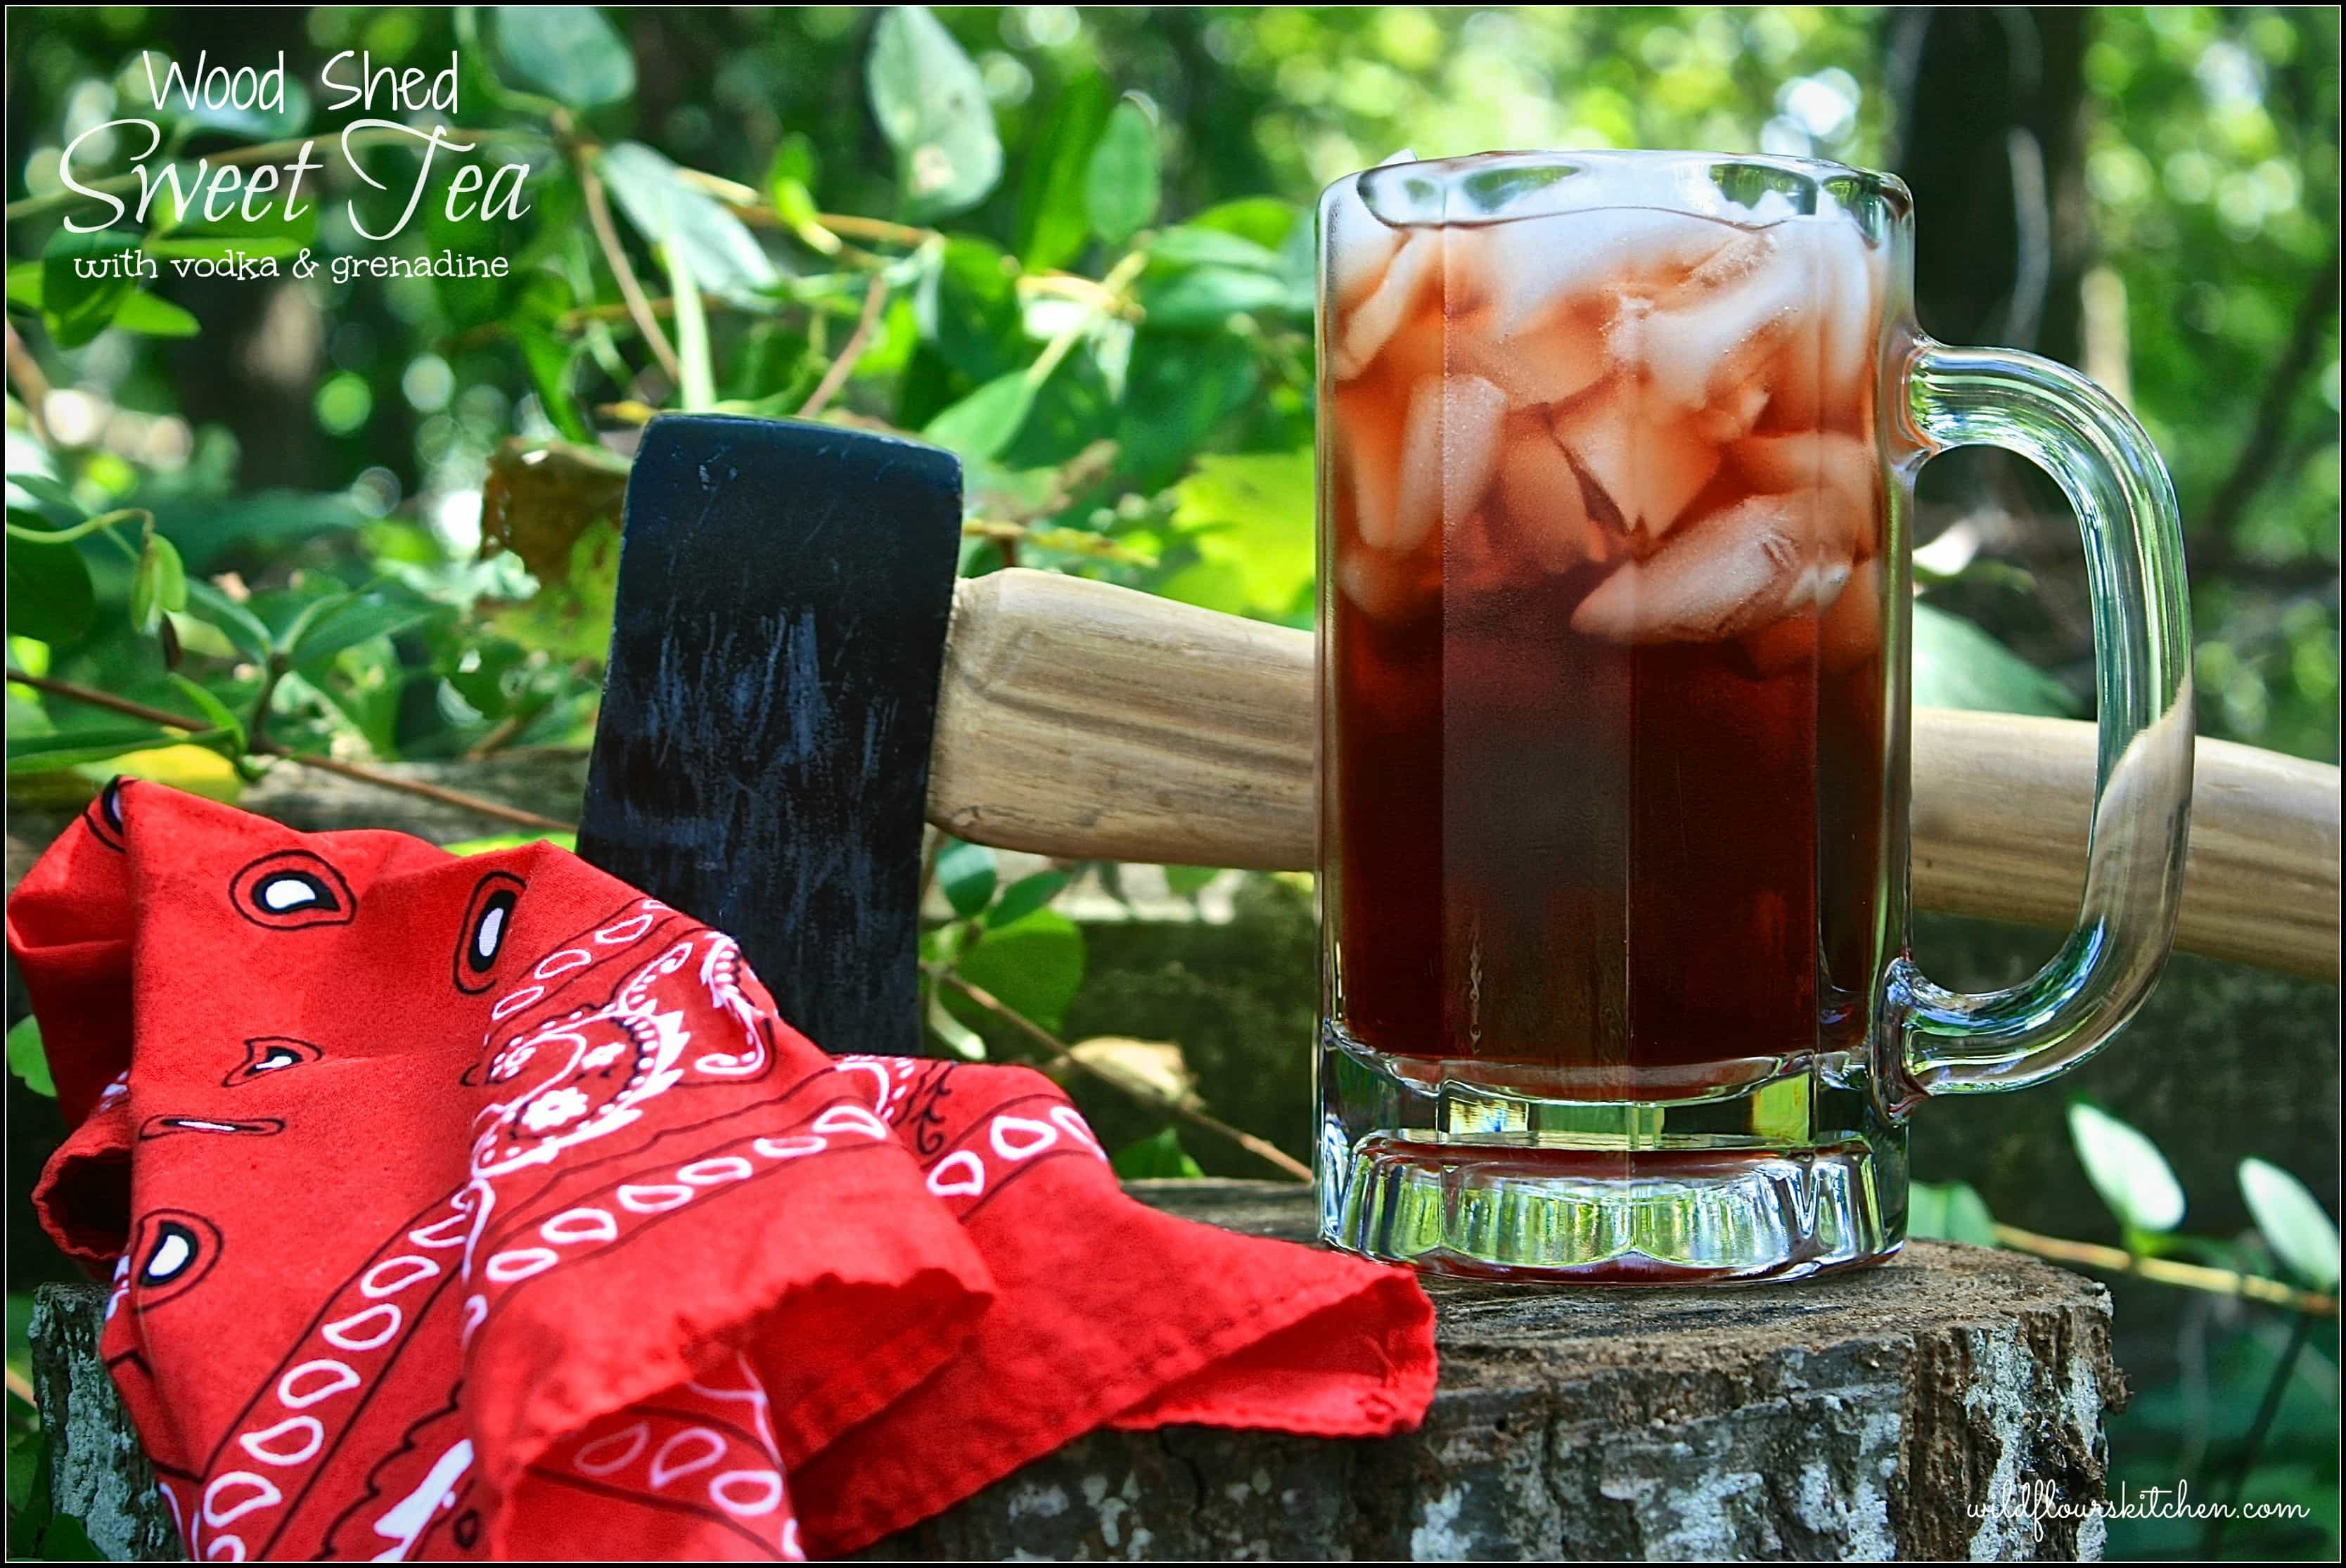 Wood Shed Hard Iced Sweet Tea with Vodka & Grenadine - Wildflour's ...